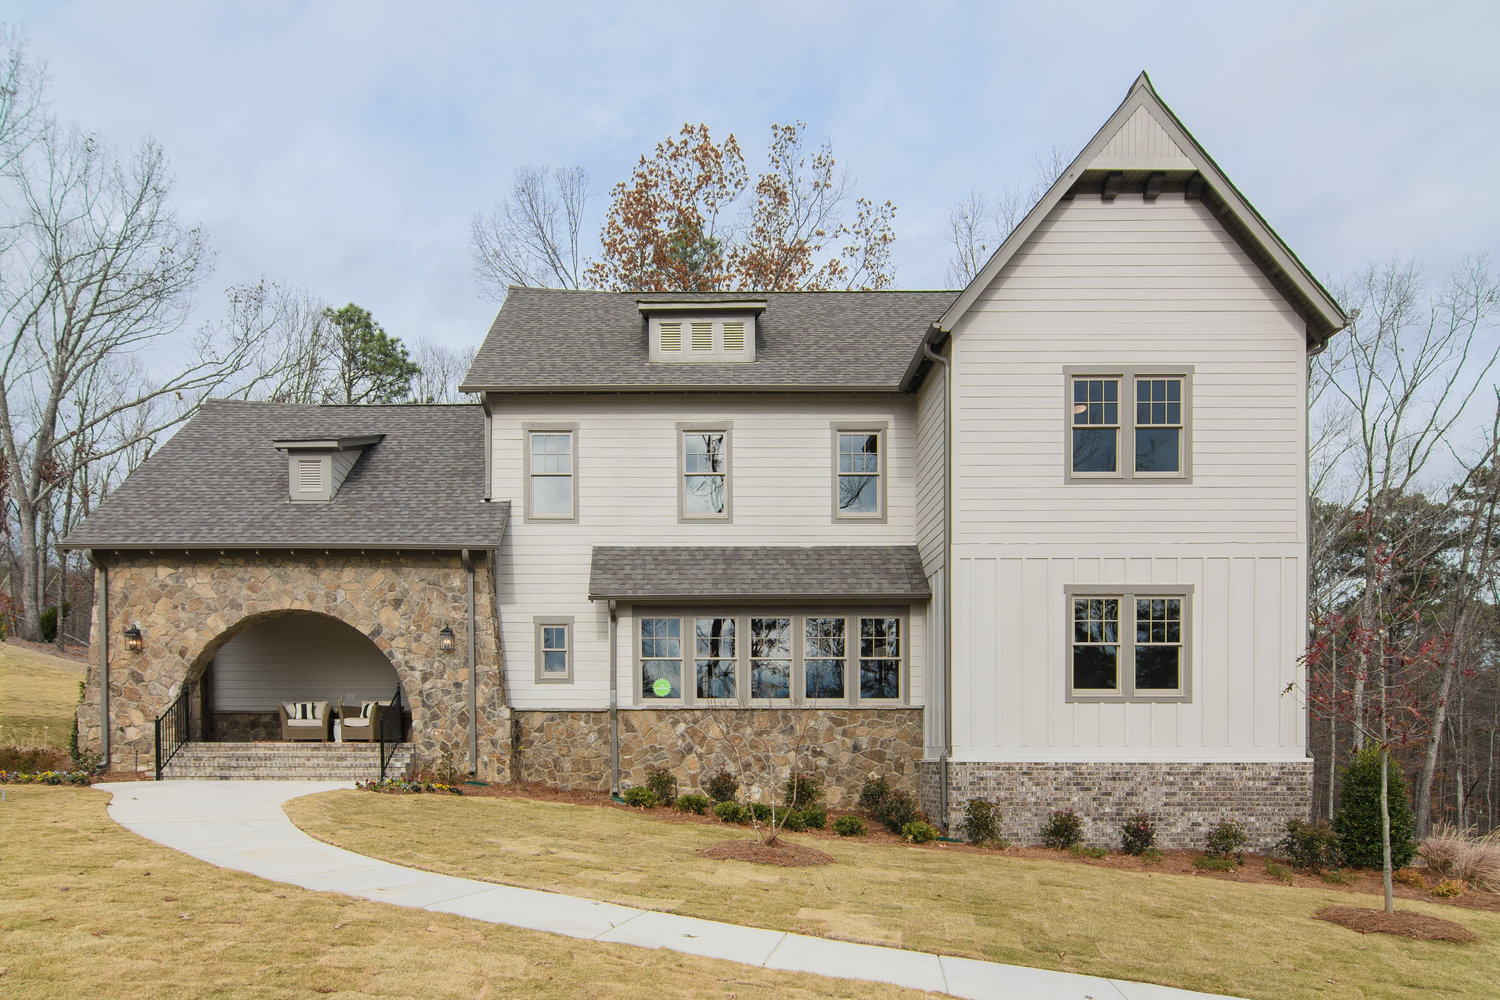 Virtual Tour of Birmingham Metro Real Estate Listing For Sale | 2284 Brock Circle, Hoover, AL 35242